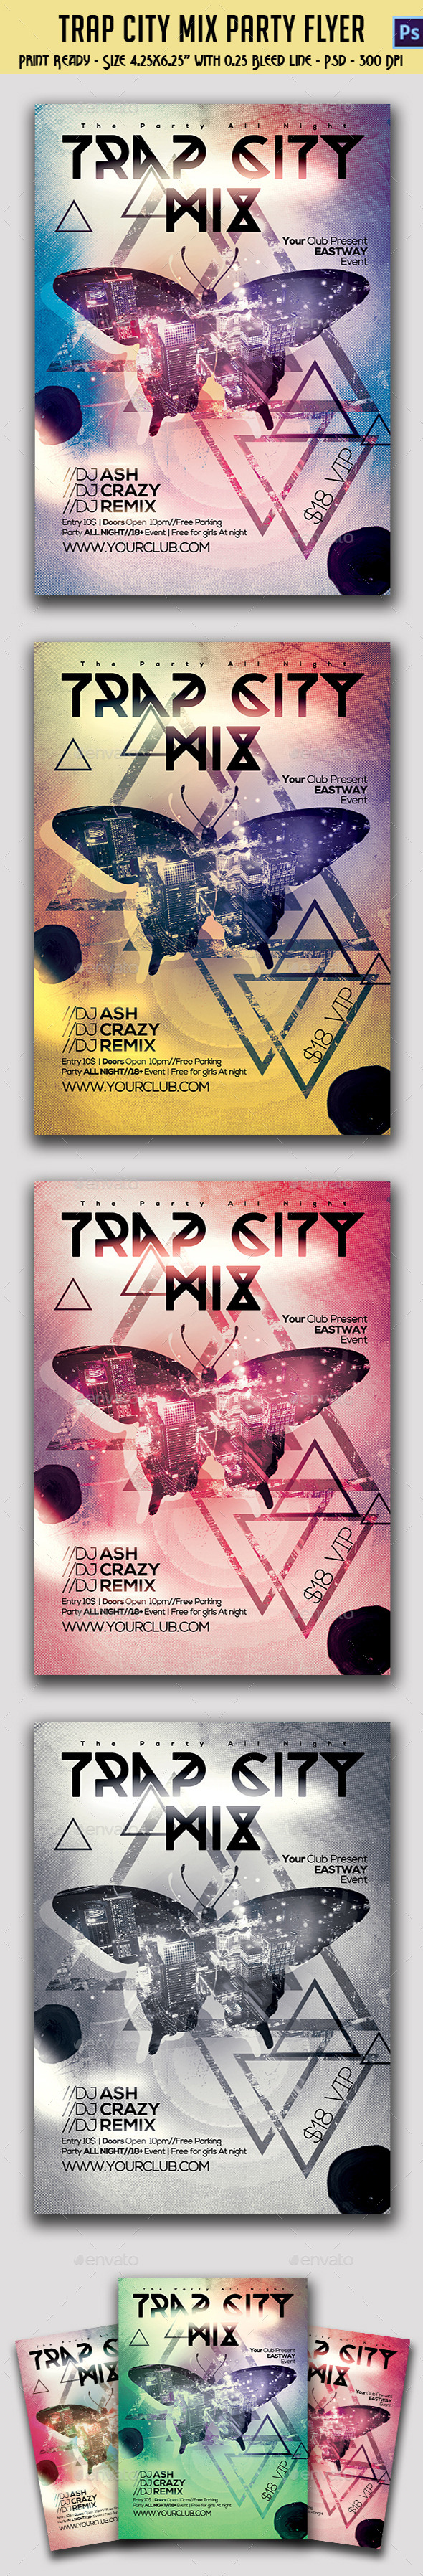 GraphicRiver Trap City Mix Party Template 10157318